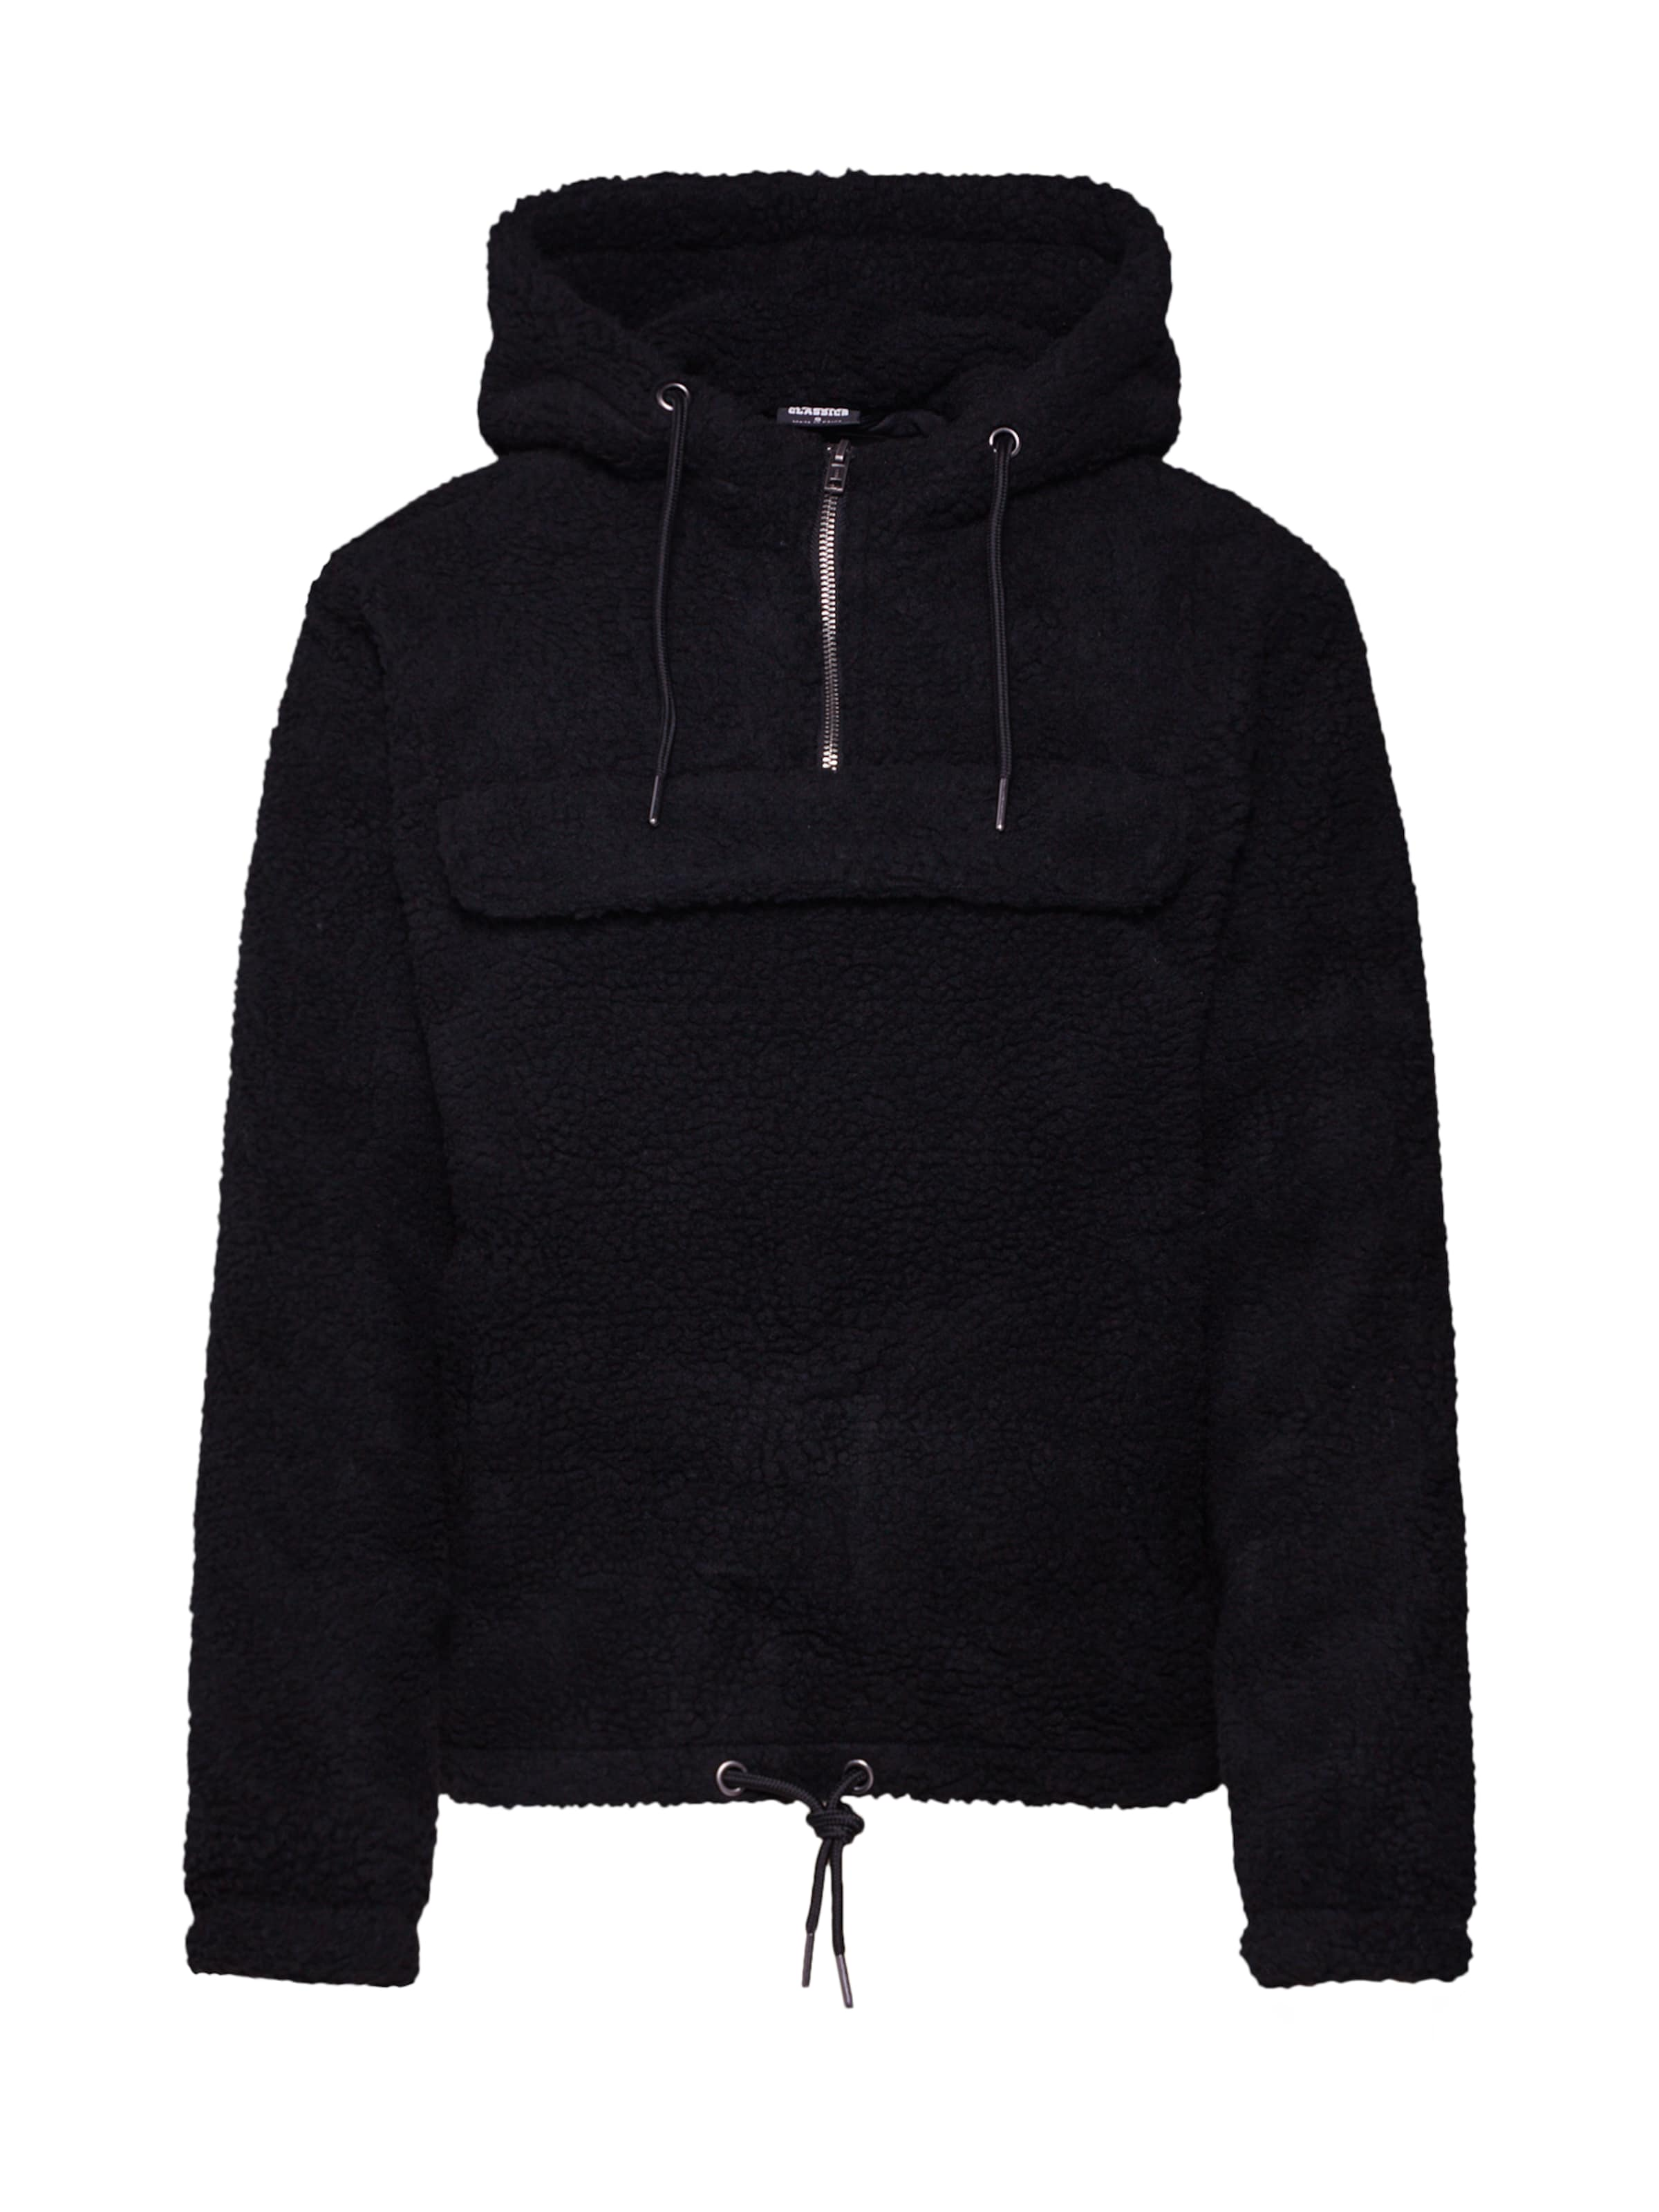 Classics Urban Pull Hoody' 'ladies Sherpa shirt Over Sweat En Noir jMVLzpqUGS